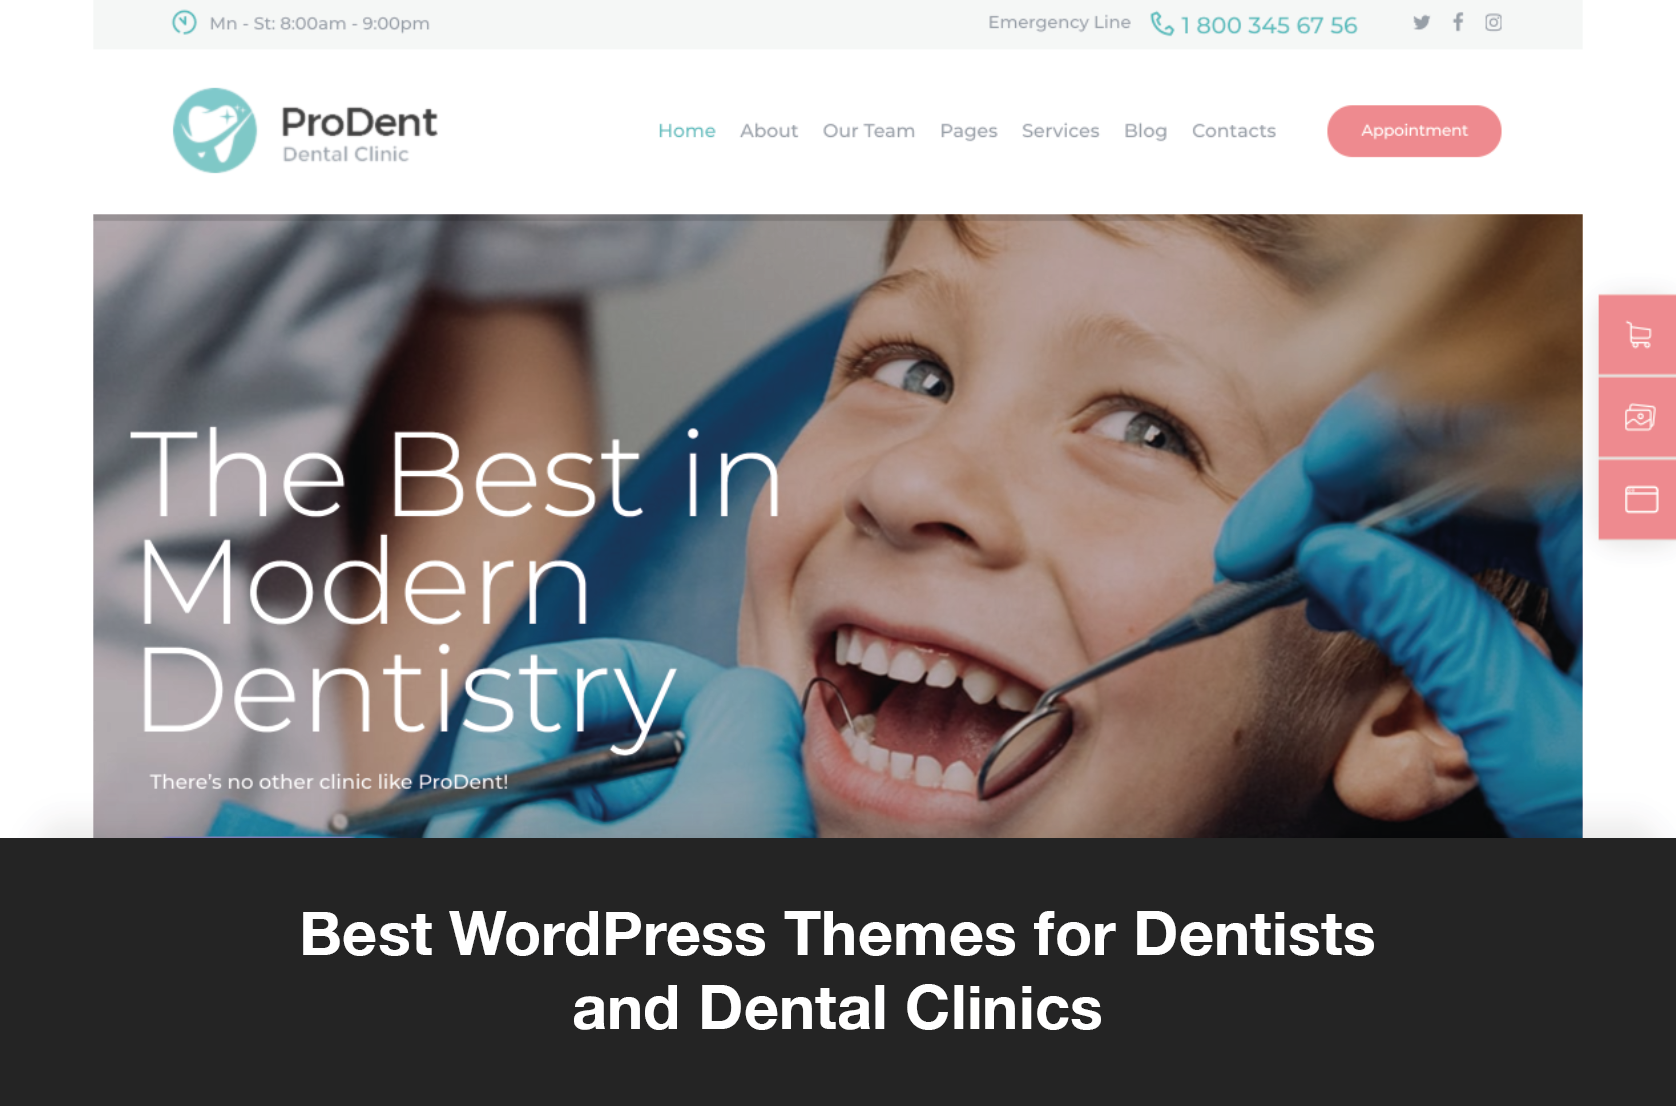 Best WordPress Themes for Dentists and Dental Clinics